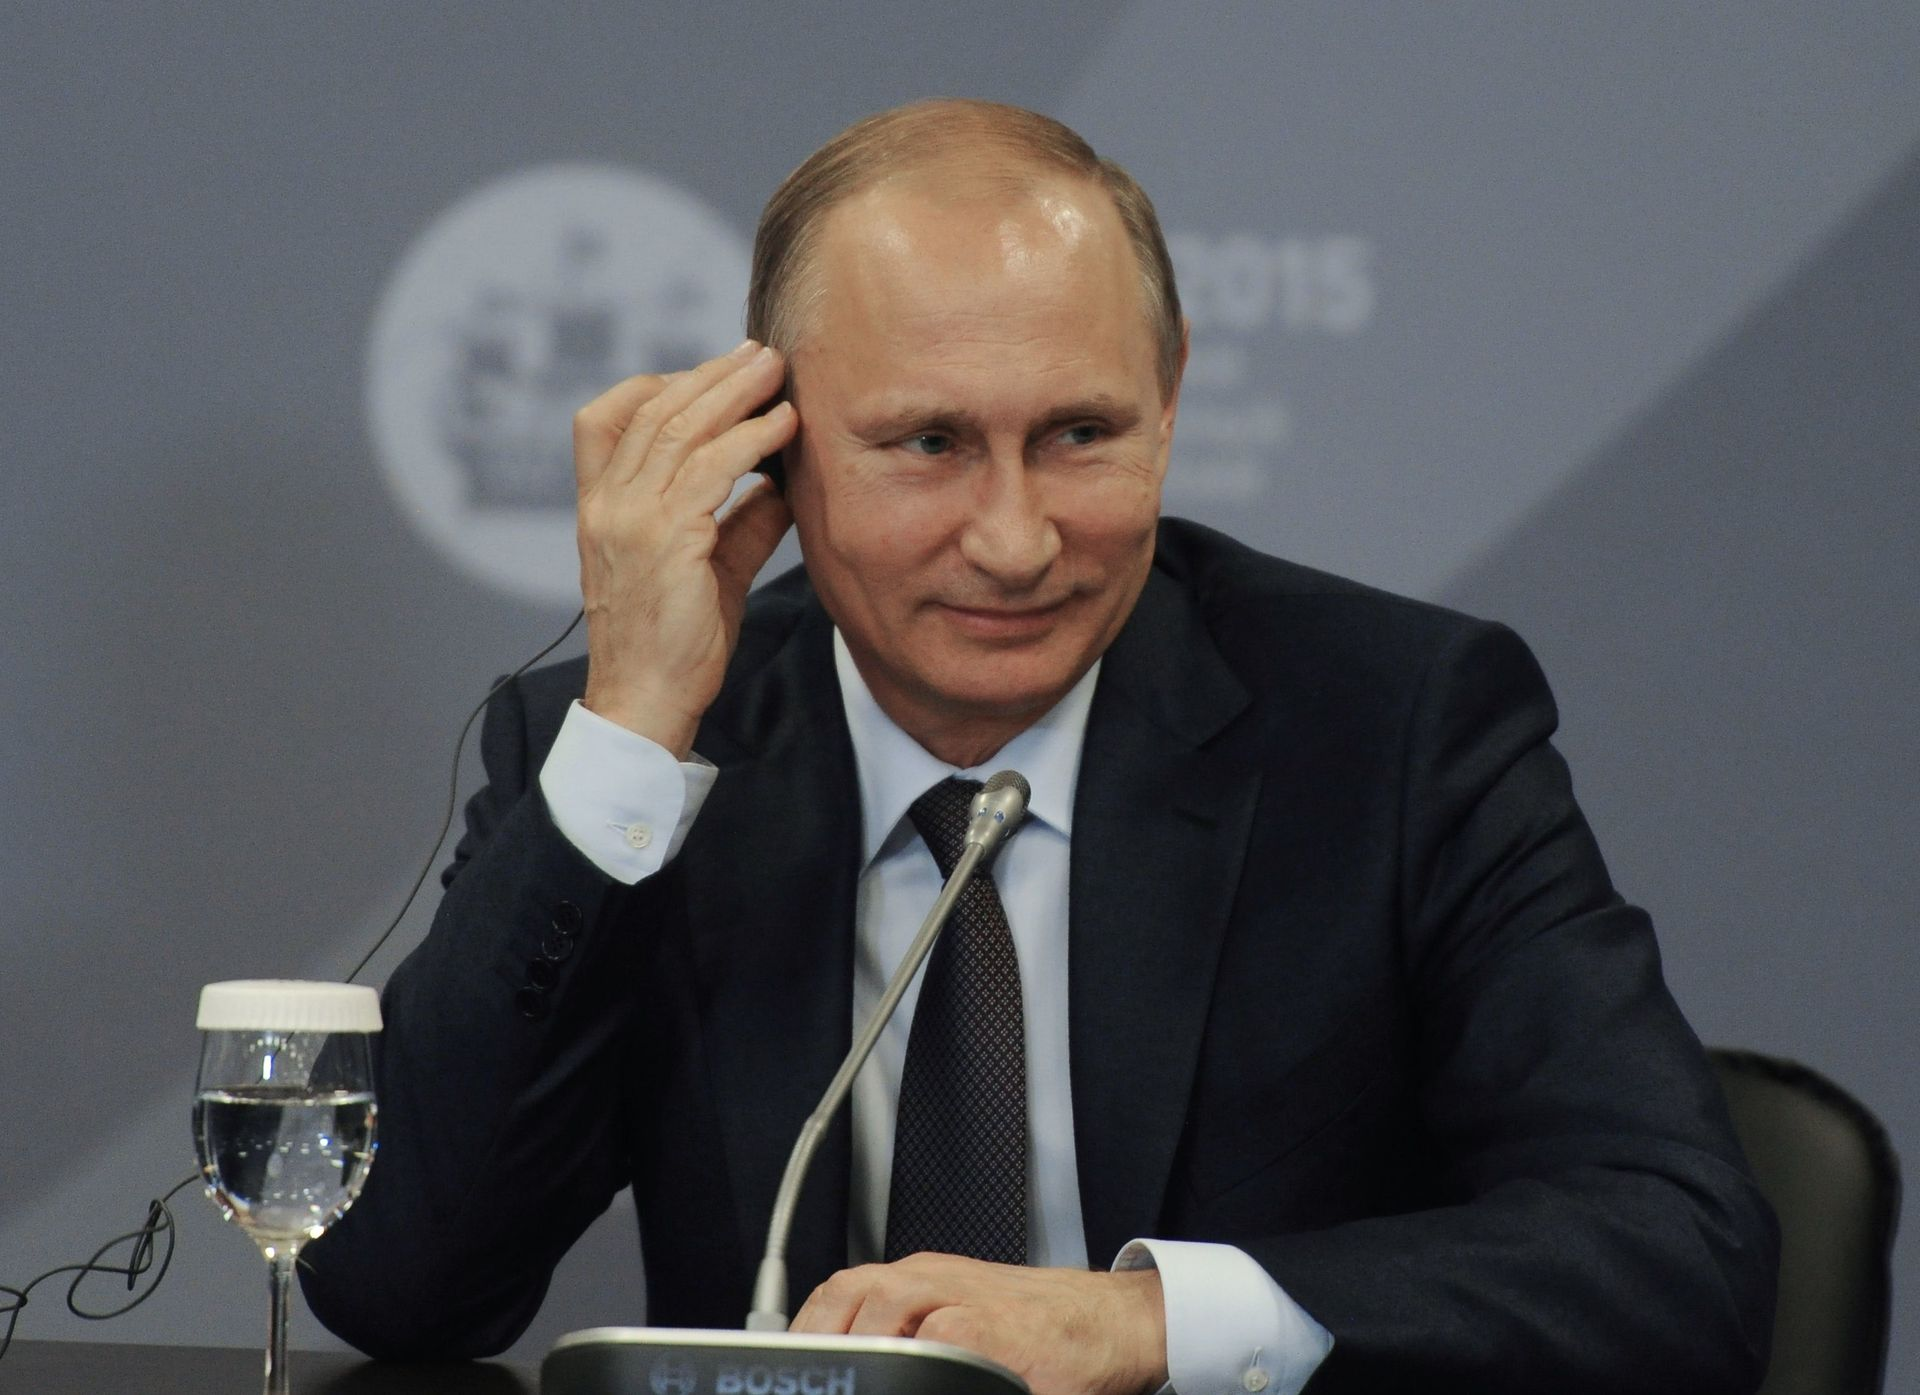 The West May Criticize As Much As It Wants But Russia Won't Care